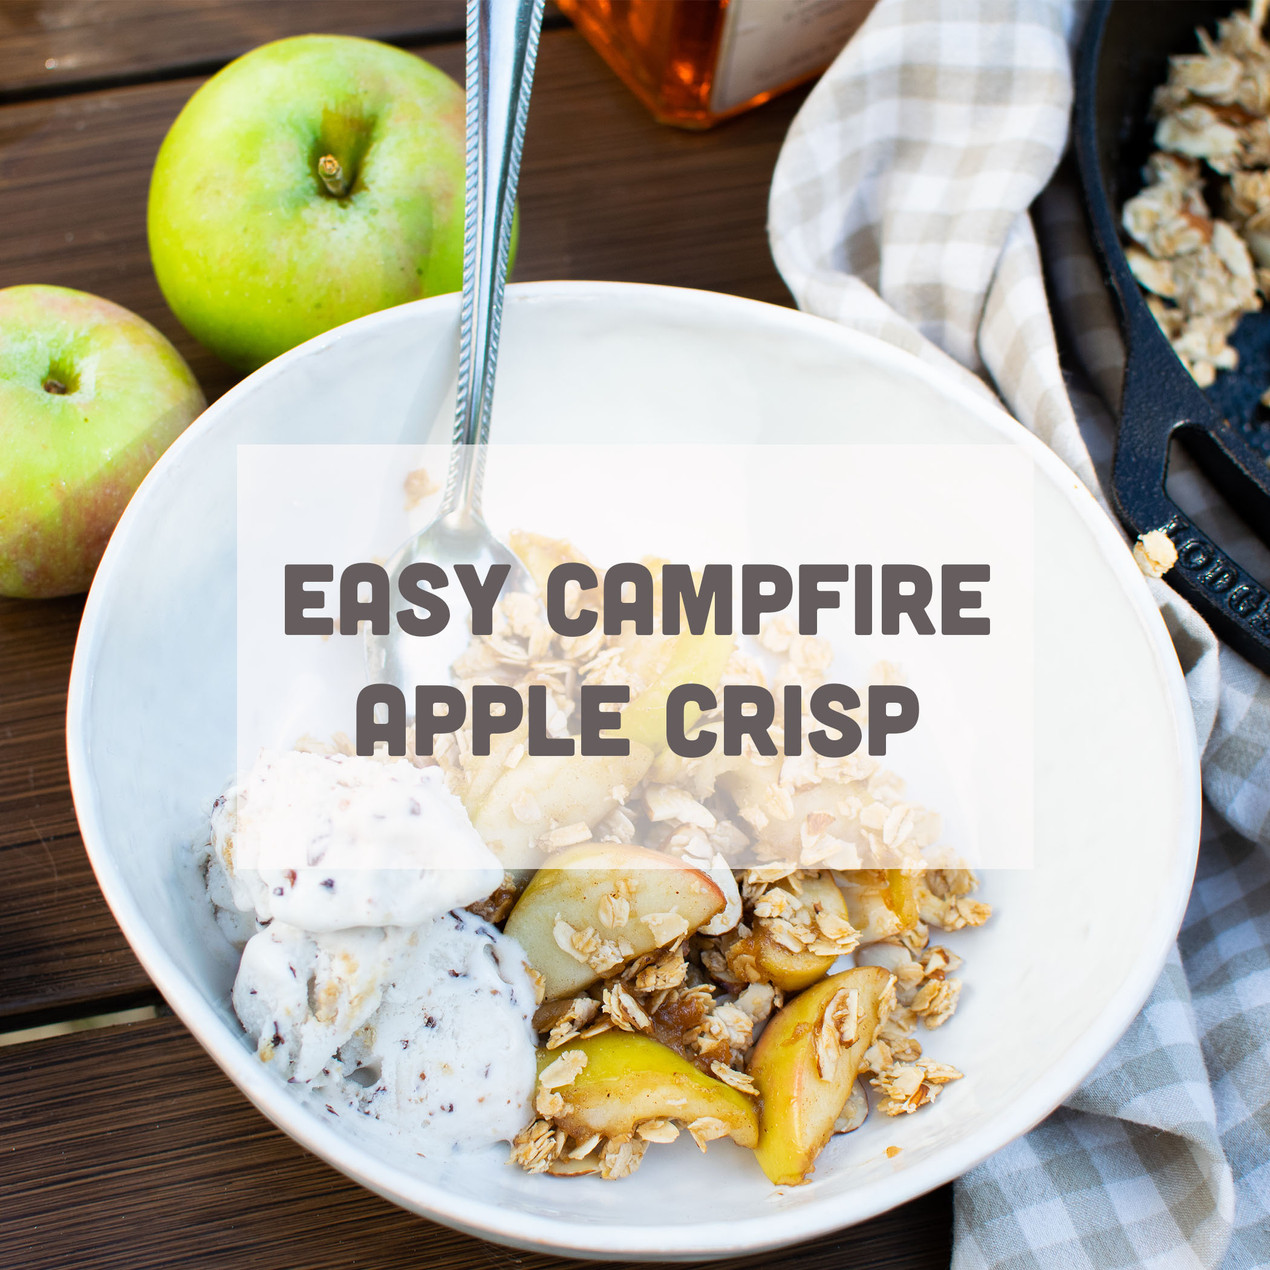 Easy Campfire Apple Crisp